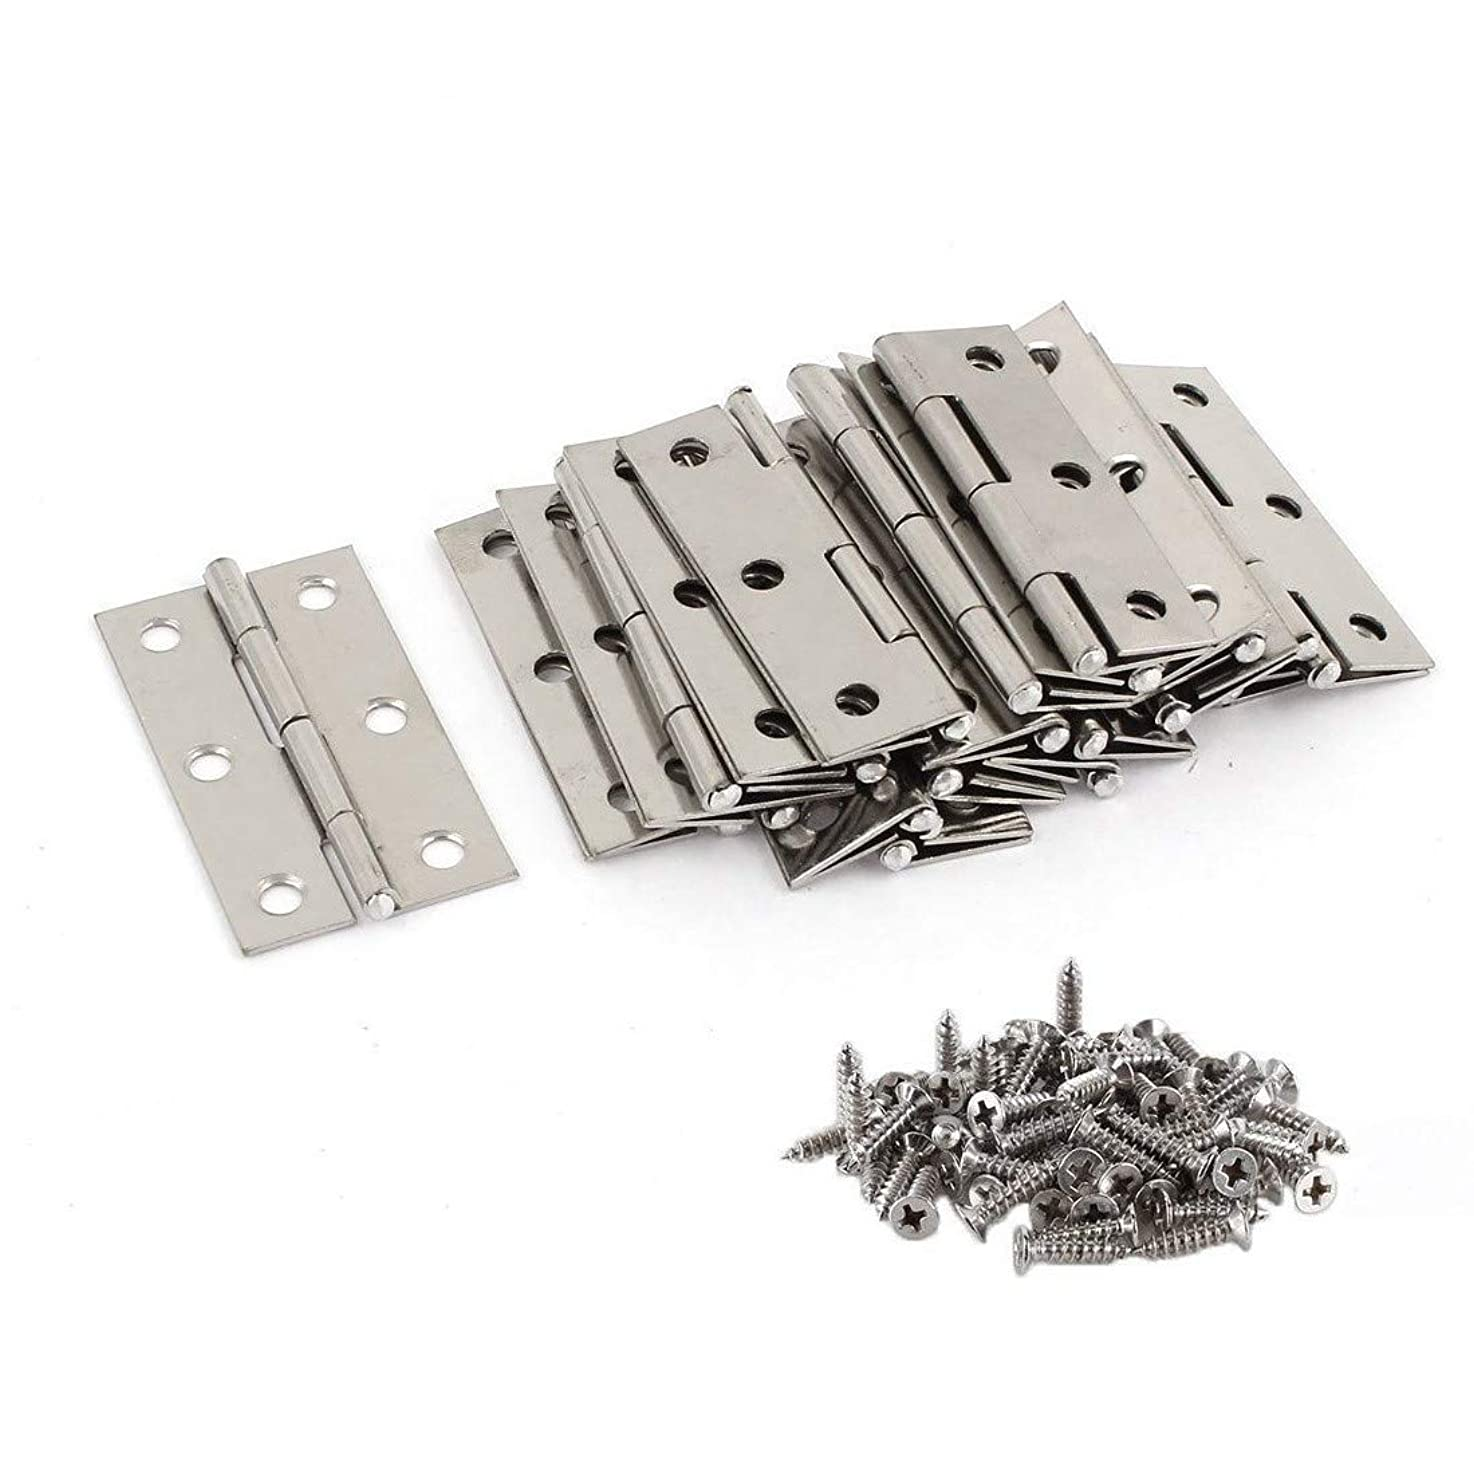 20 Stainless Steel Folding Hinges 3 inch Door and Window Hinges assigned 120 Screws